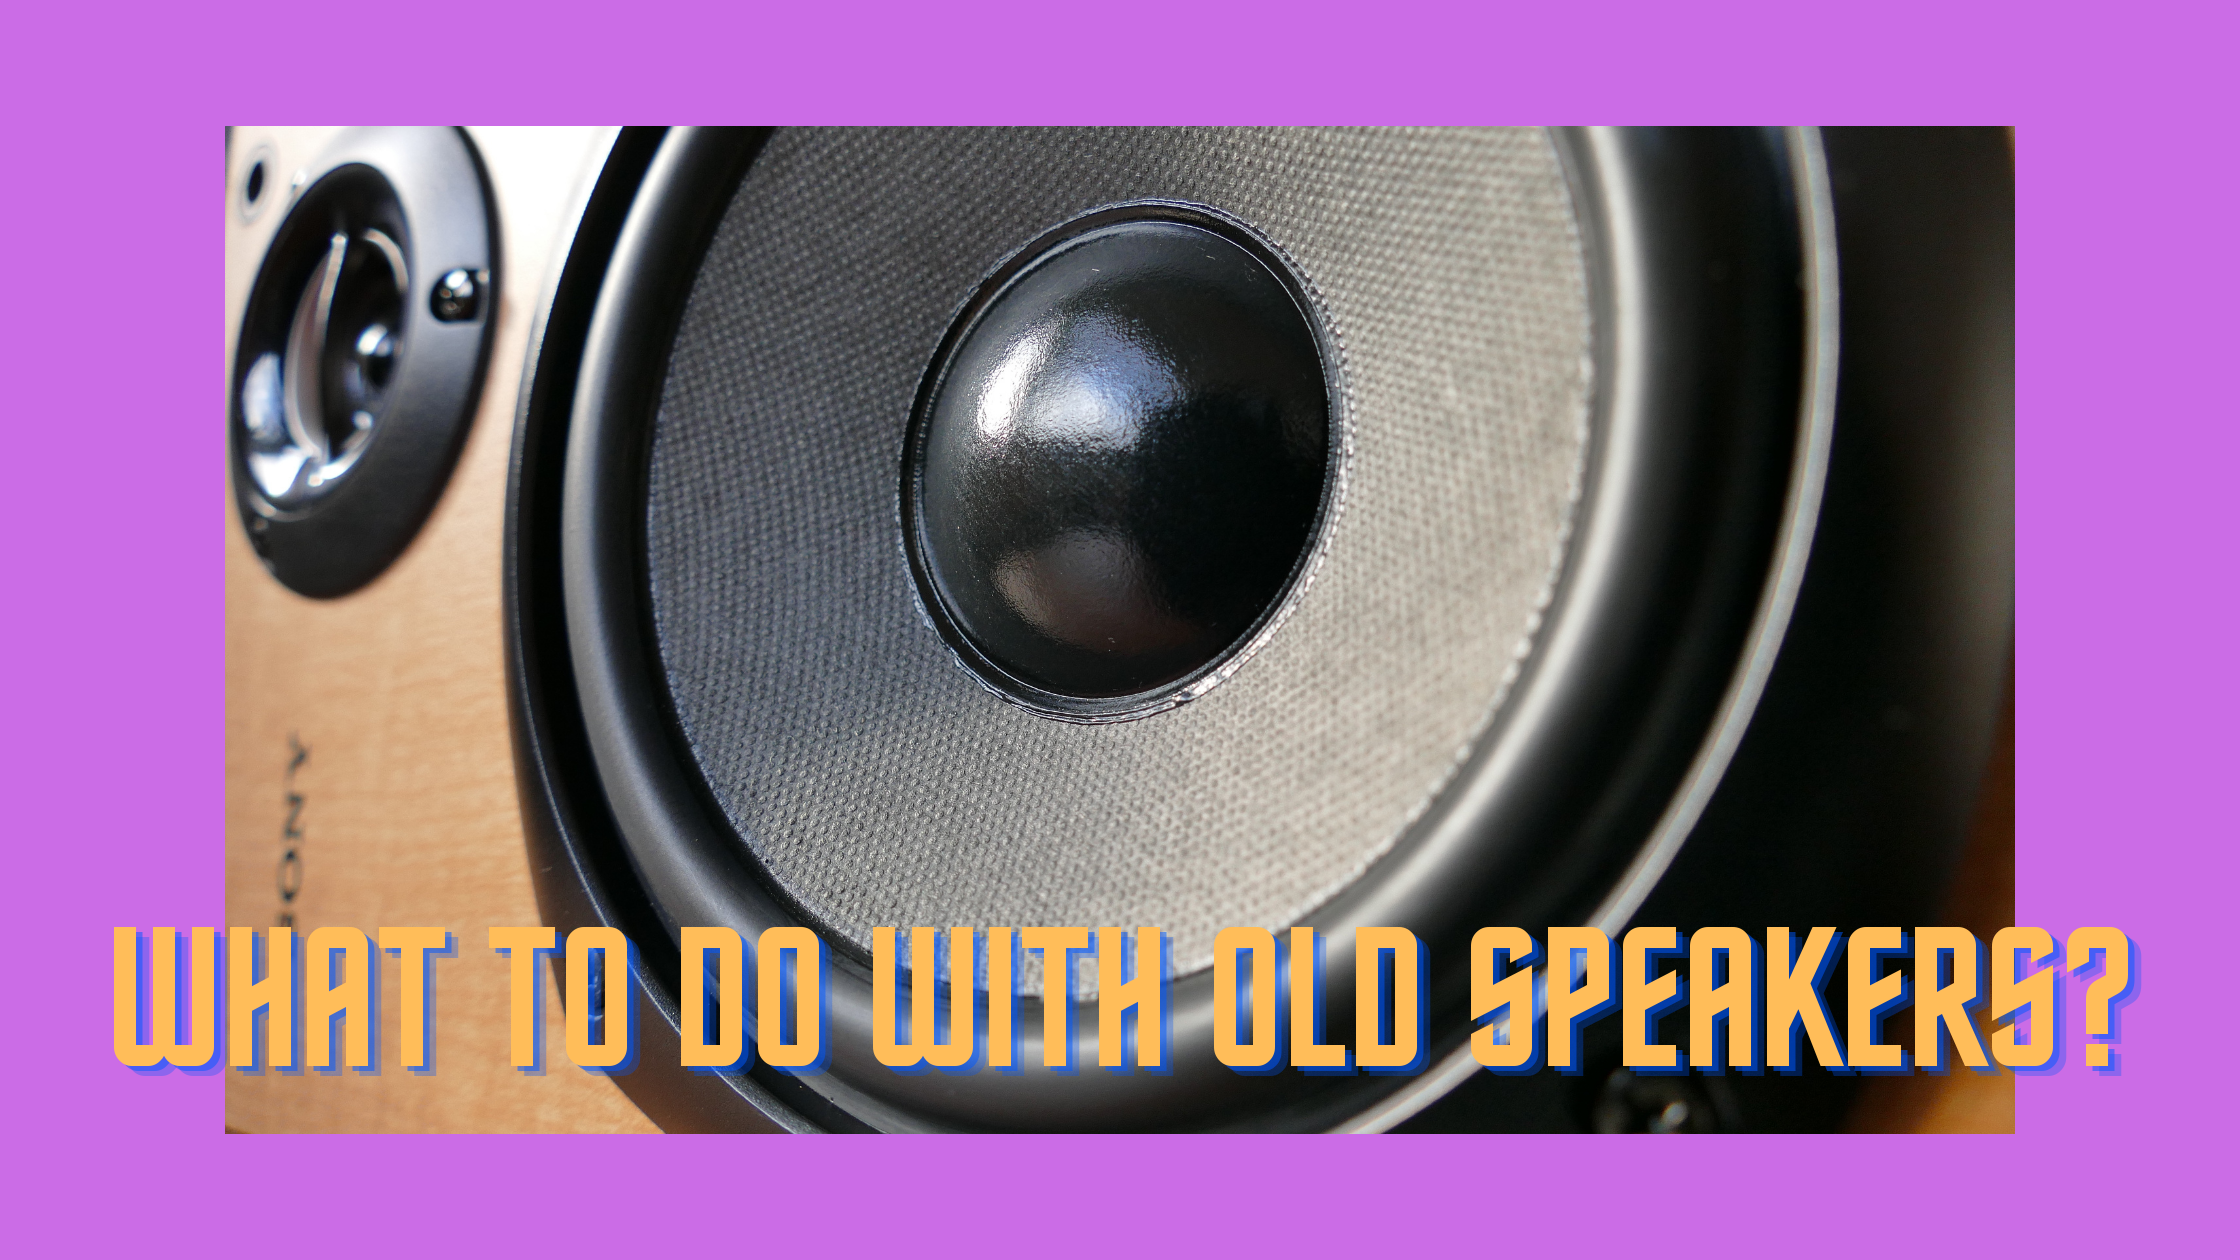 What to do with old speakers